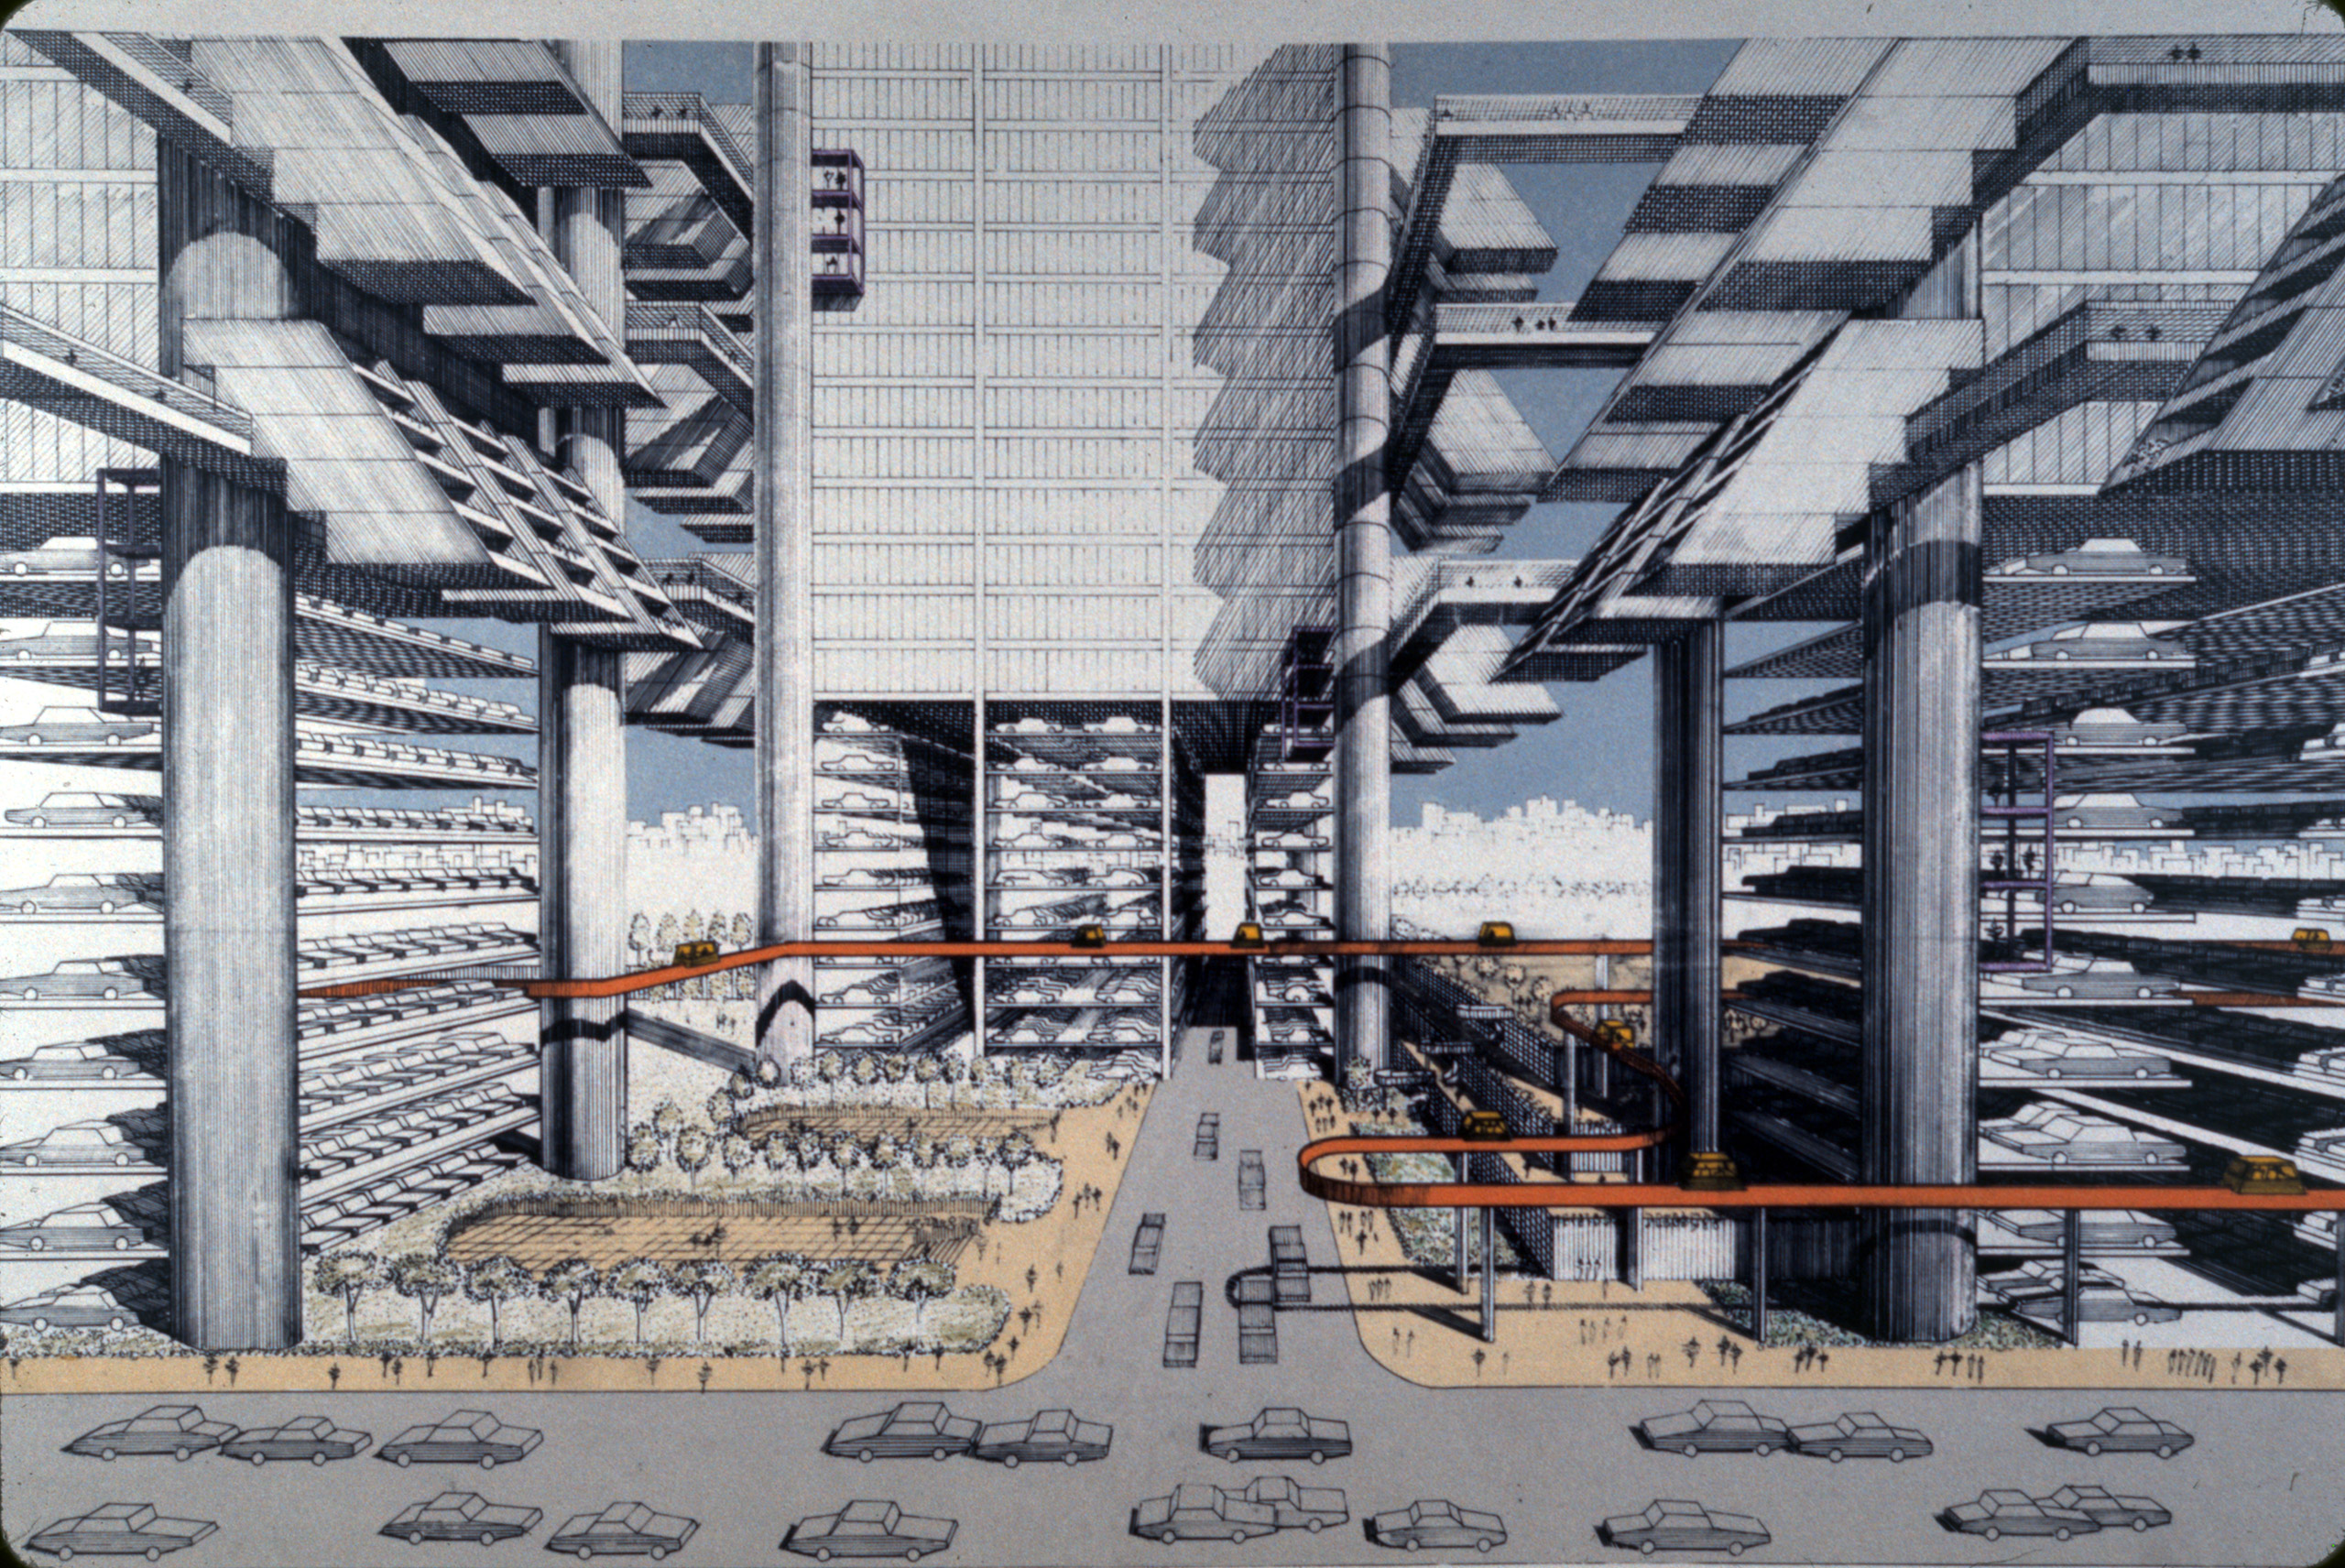 Concept renderings of Robert Moses' proposed LOMEX (Lower Manhattan Expressway).